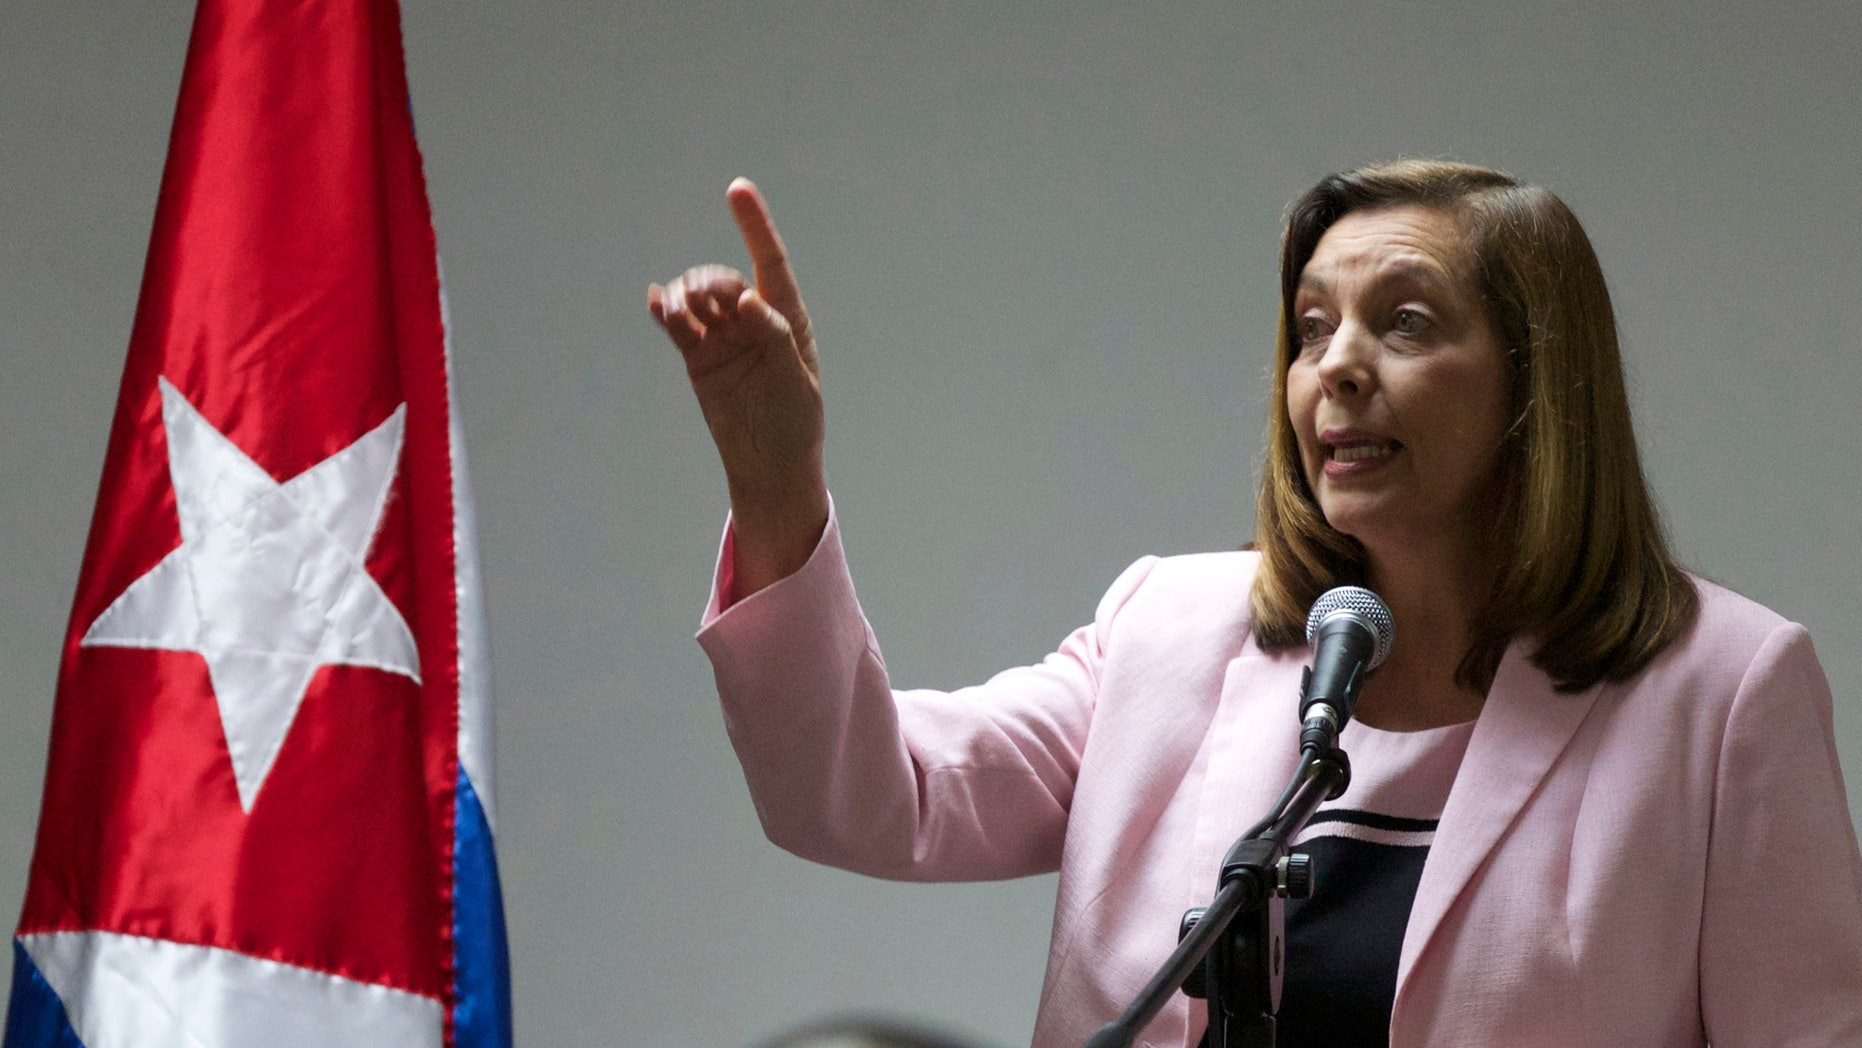 Ministry of Foreign Relations General Director for the United States Josefina Vidal, speaks during a briefing after taking part in talks with the U.S., in Havana, Cuba, Wednesday, Jan. 21, 2015.  The highest-level U.S. delegation to Cuba in decades kicked off two days of negotiations Wednesday after grand promises by President Barack Obama about change on the island and a somber warning from Cuba to abandon hopes of reforming the communist government. (AP Photo/Desmond Boylan)